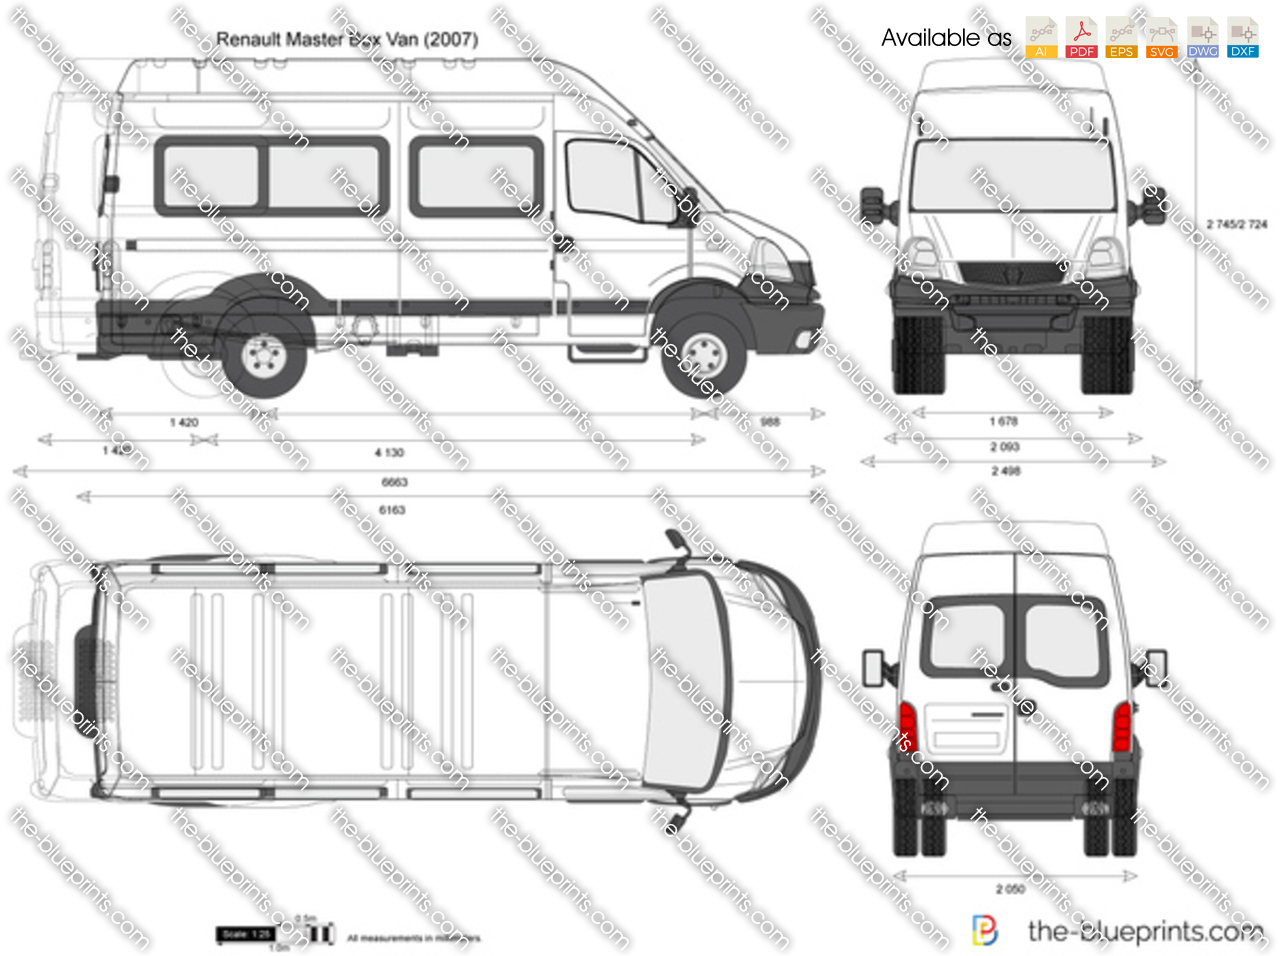 renault master box van vector drawing. Black Bedroom Furniture Sets. Home Design Ideas